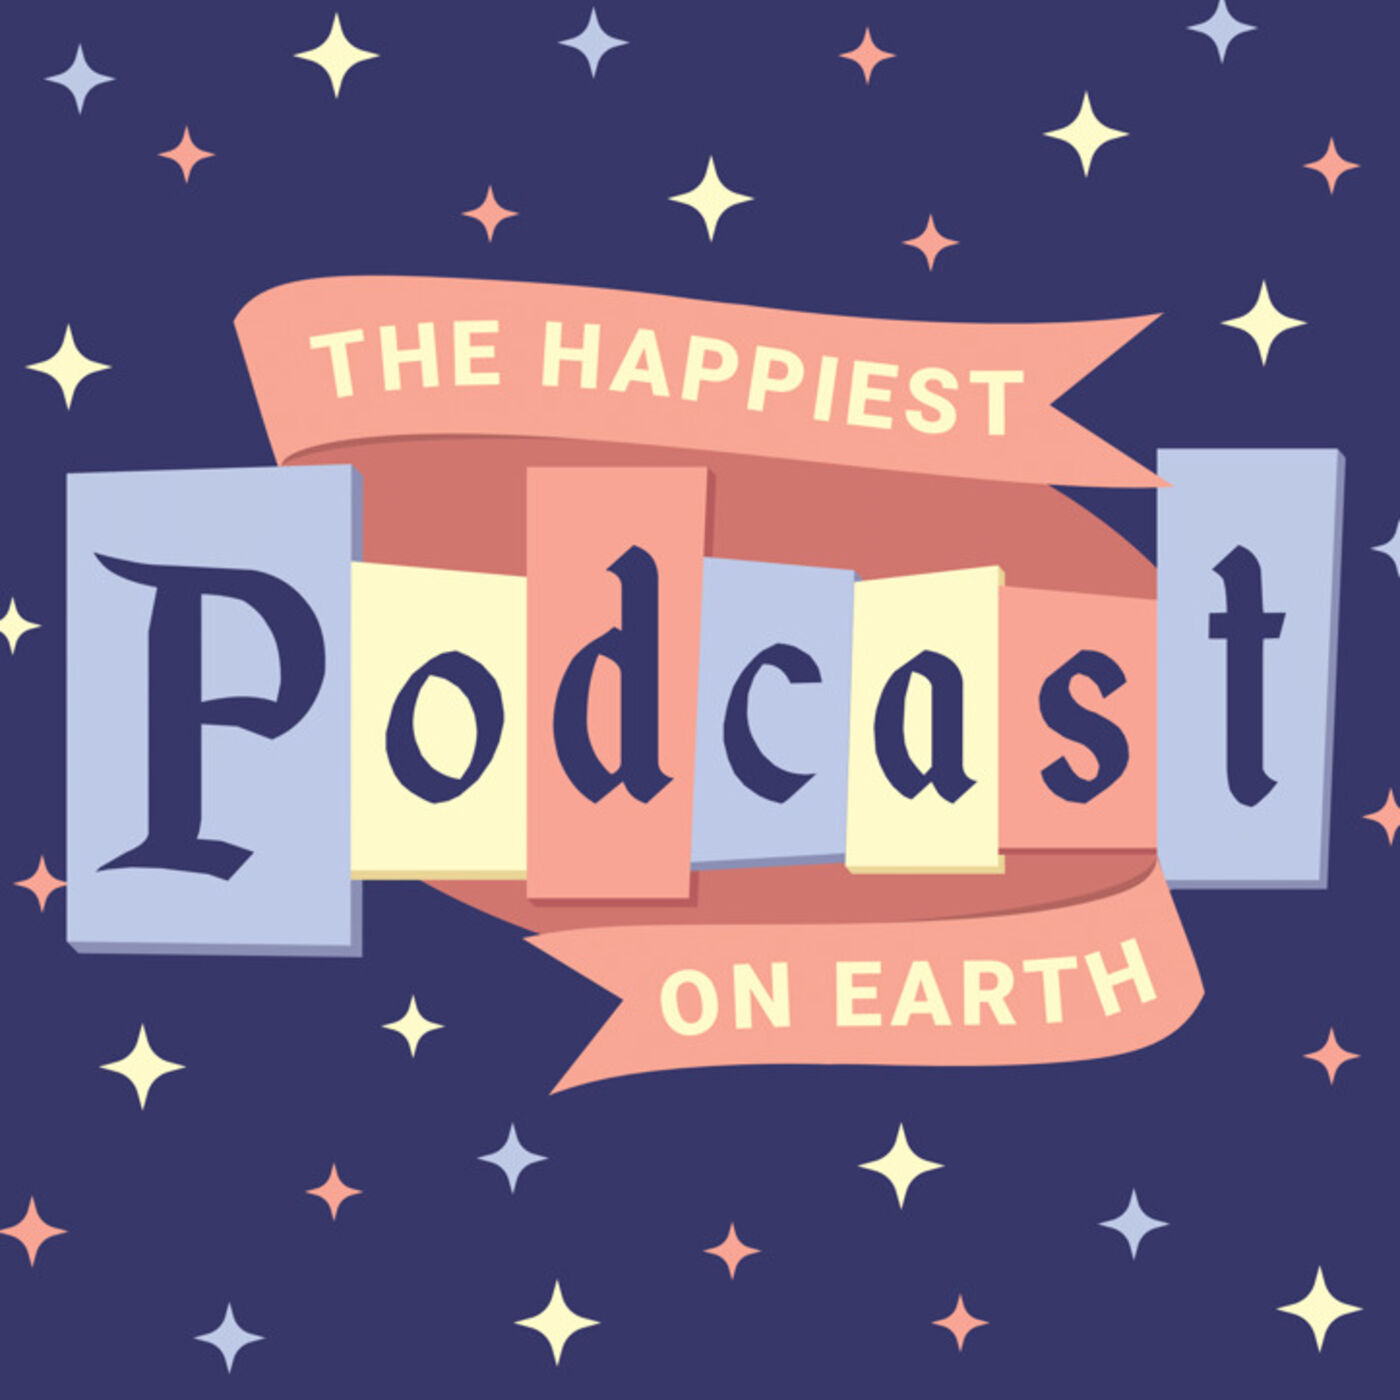 Happiest Podcast On Earth - Disney, Disney World, Disneyland, and More!